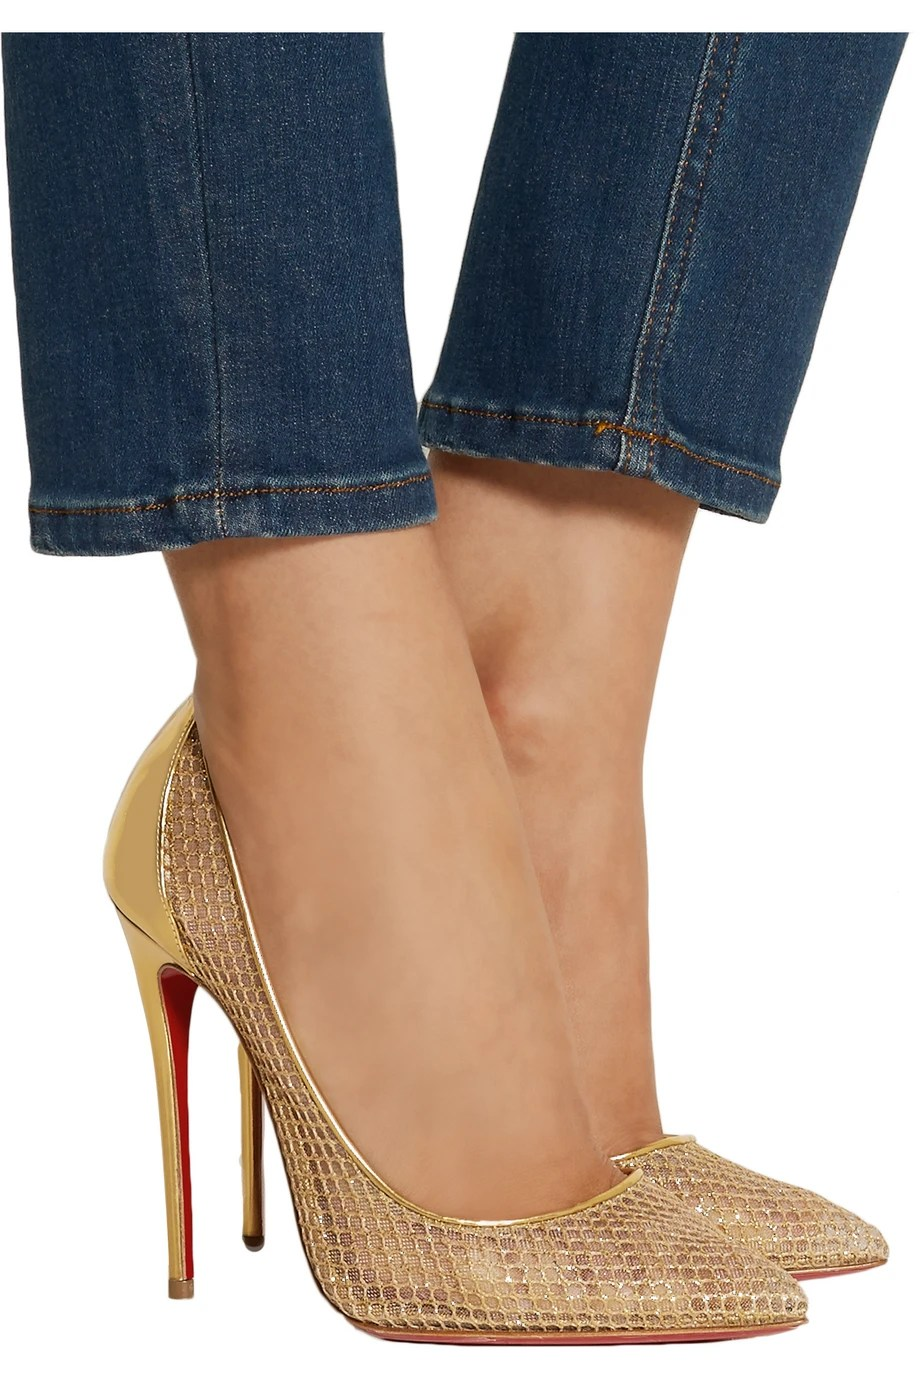 Christian Louboutin  front